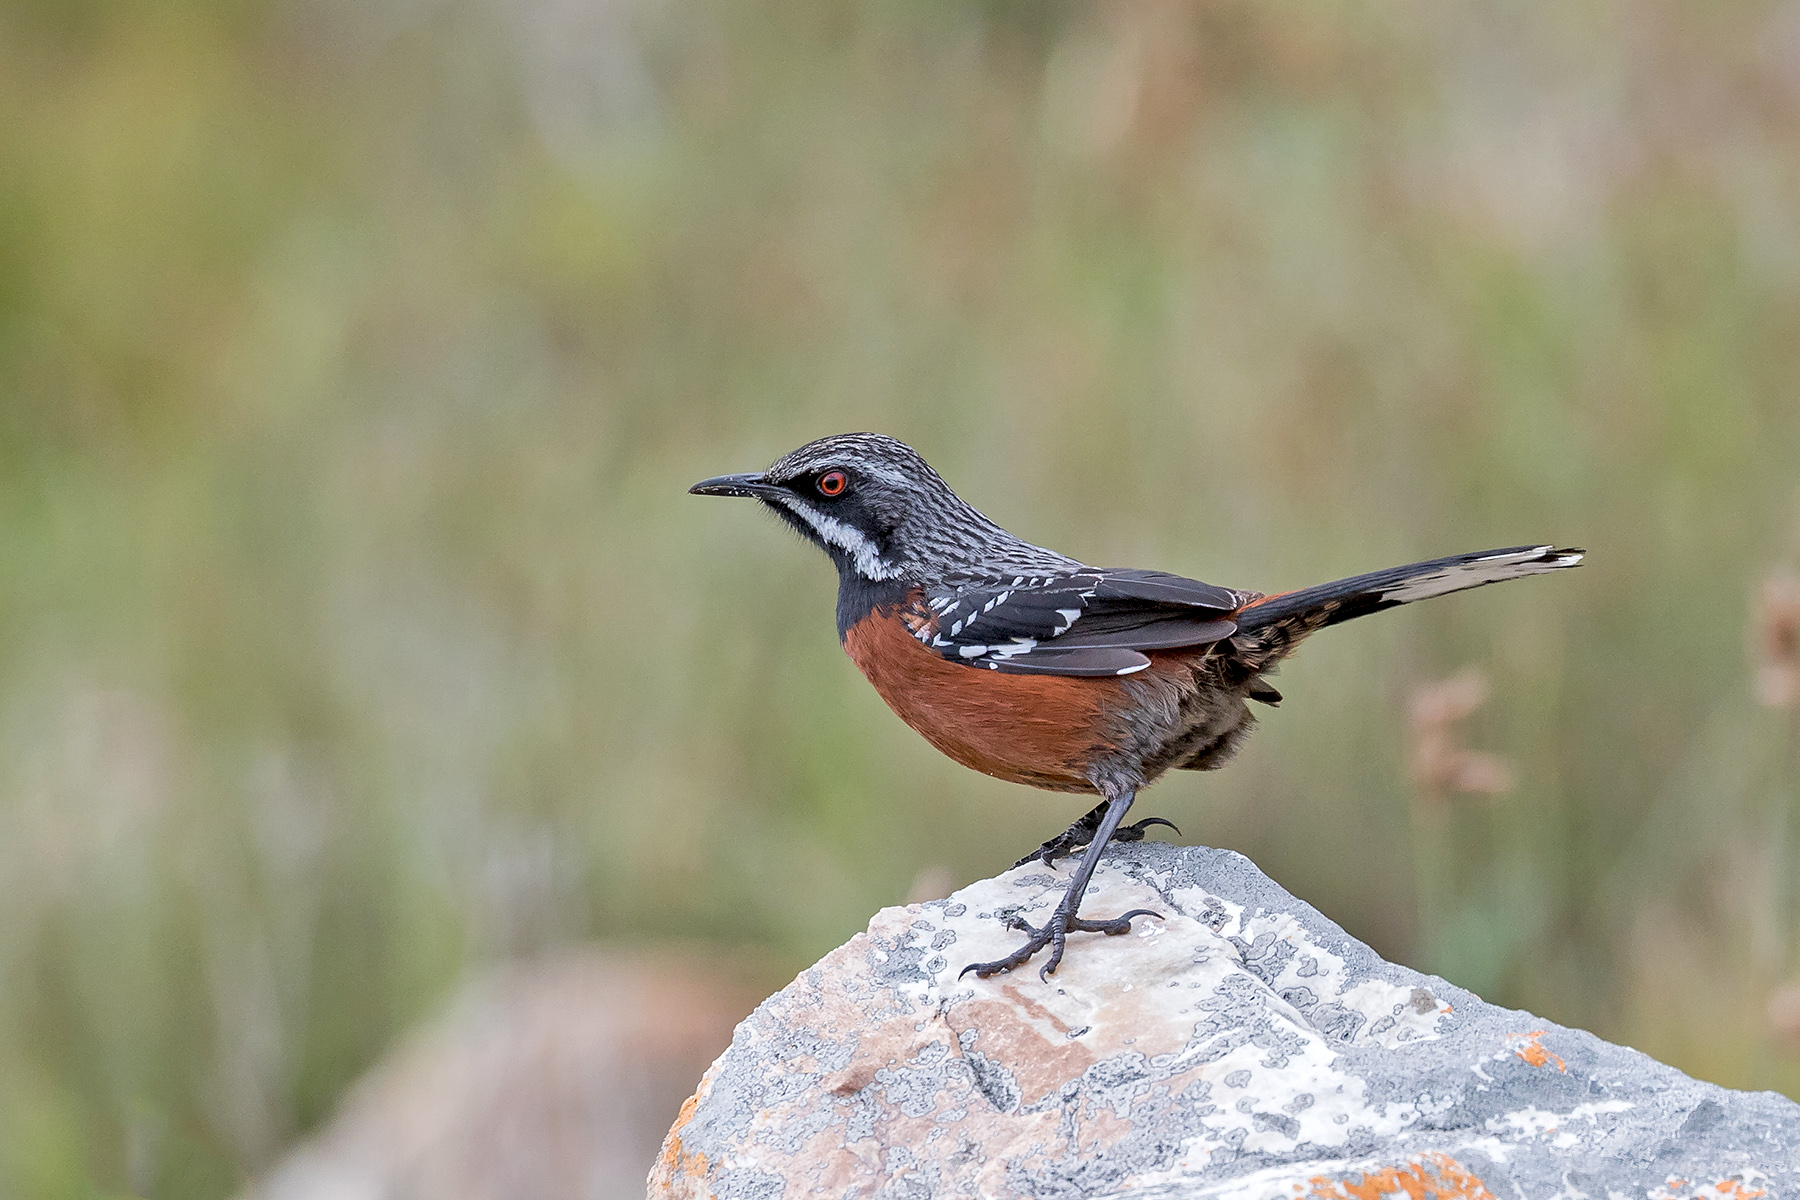 Cape Rockjumper on our South Africa birding tour in South Africa (image by Pete Morris)